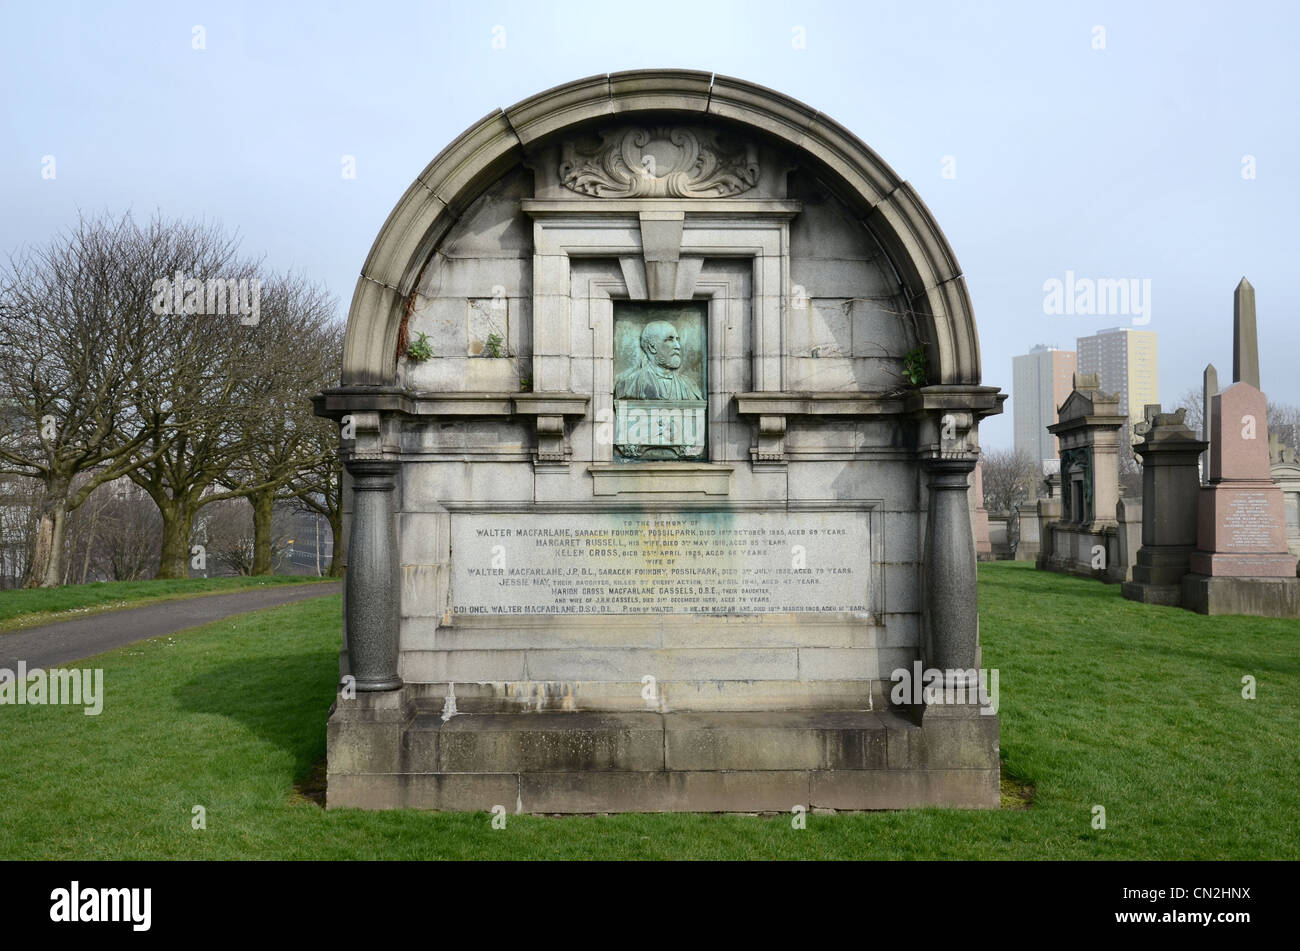 The tomb of Walter MacFarlane of the Saracen Foundry at the Glasgow Necropolis, complete with an art nouveau portrait - Stock Image